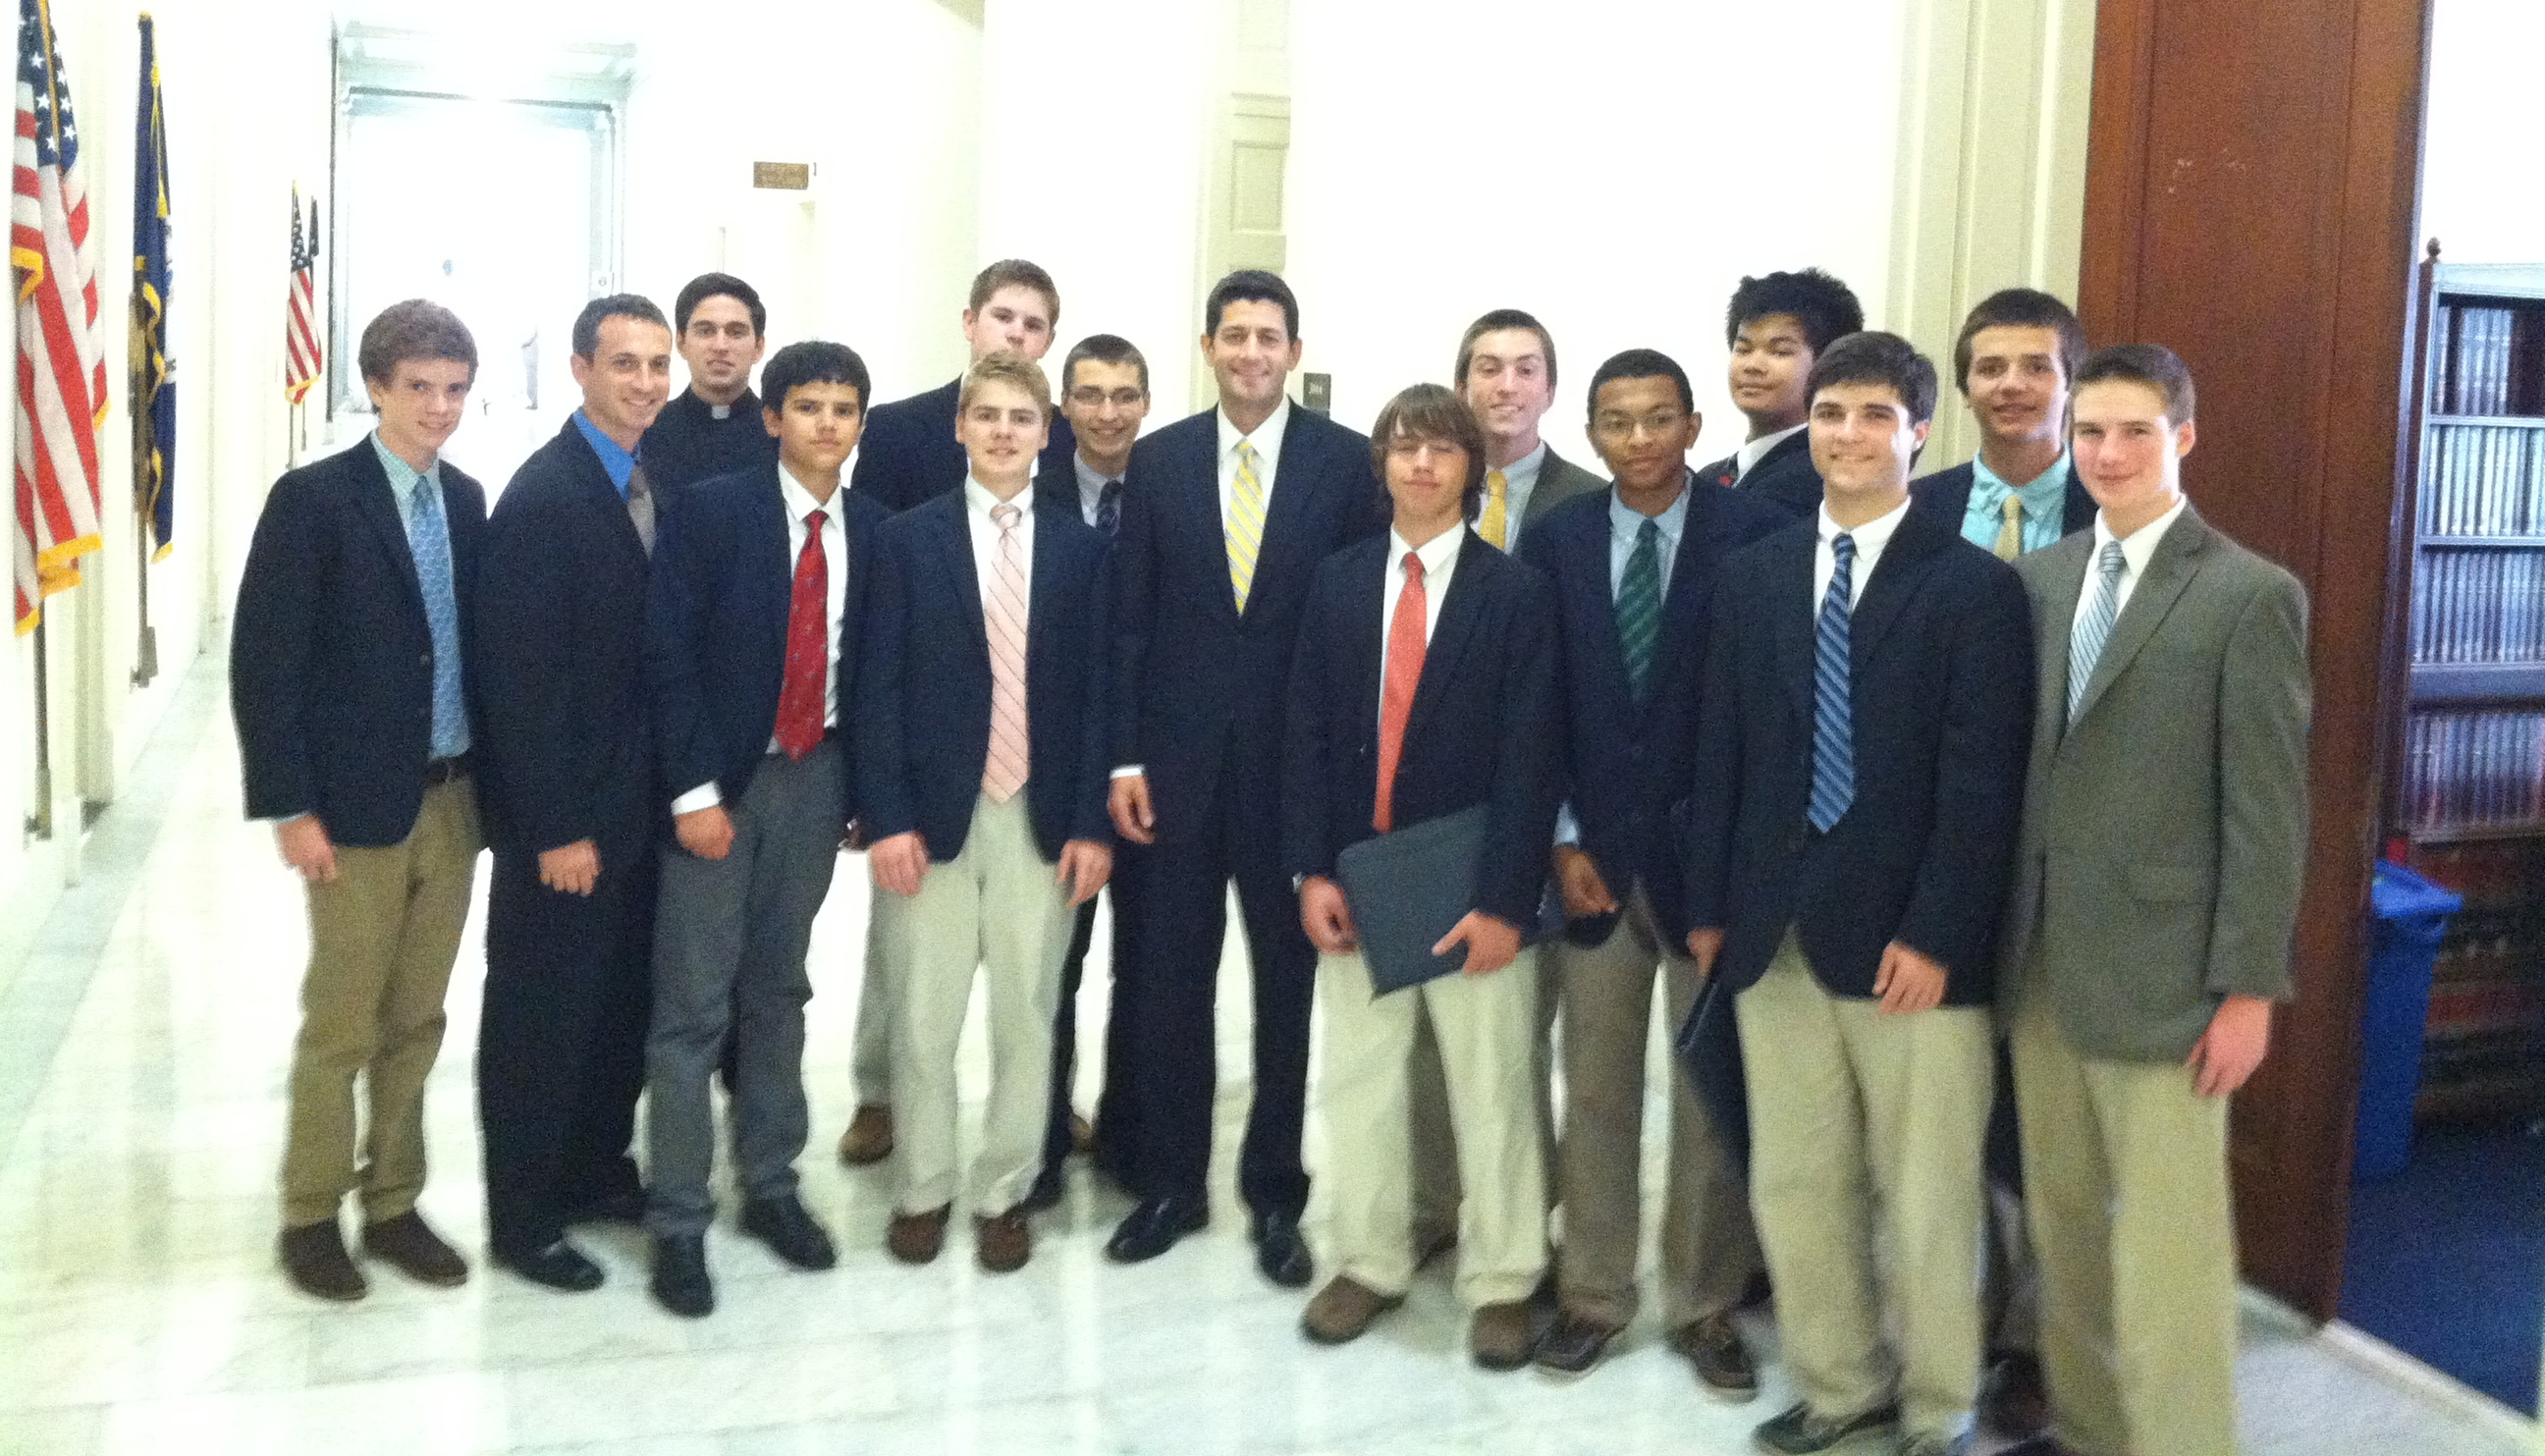 LTP Group with Paul Ryan